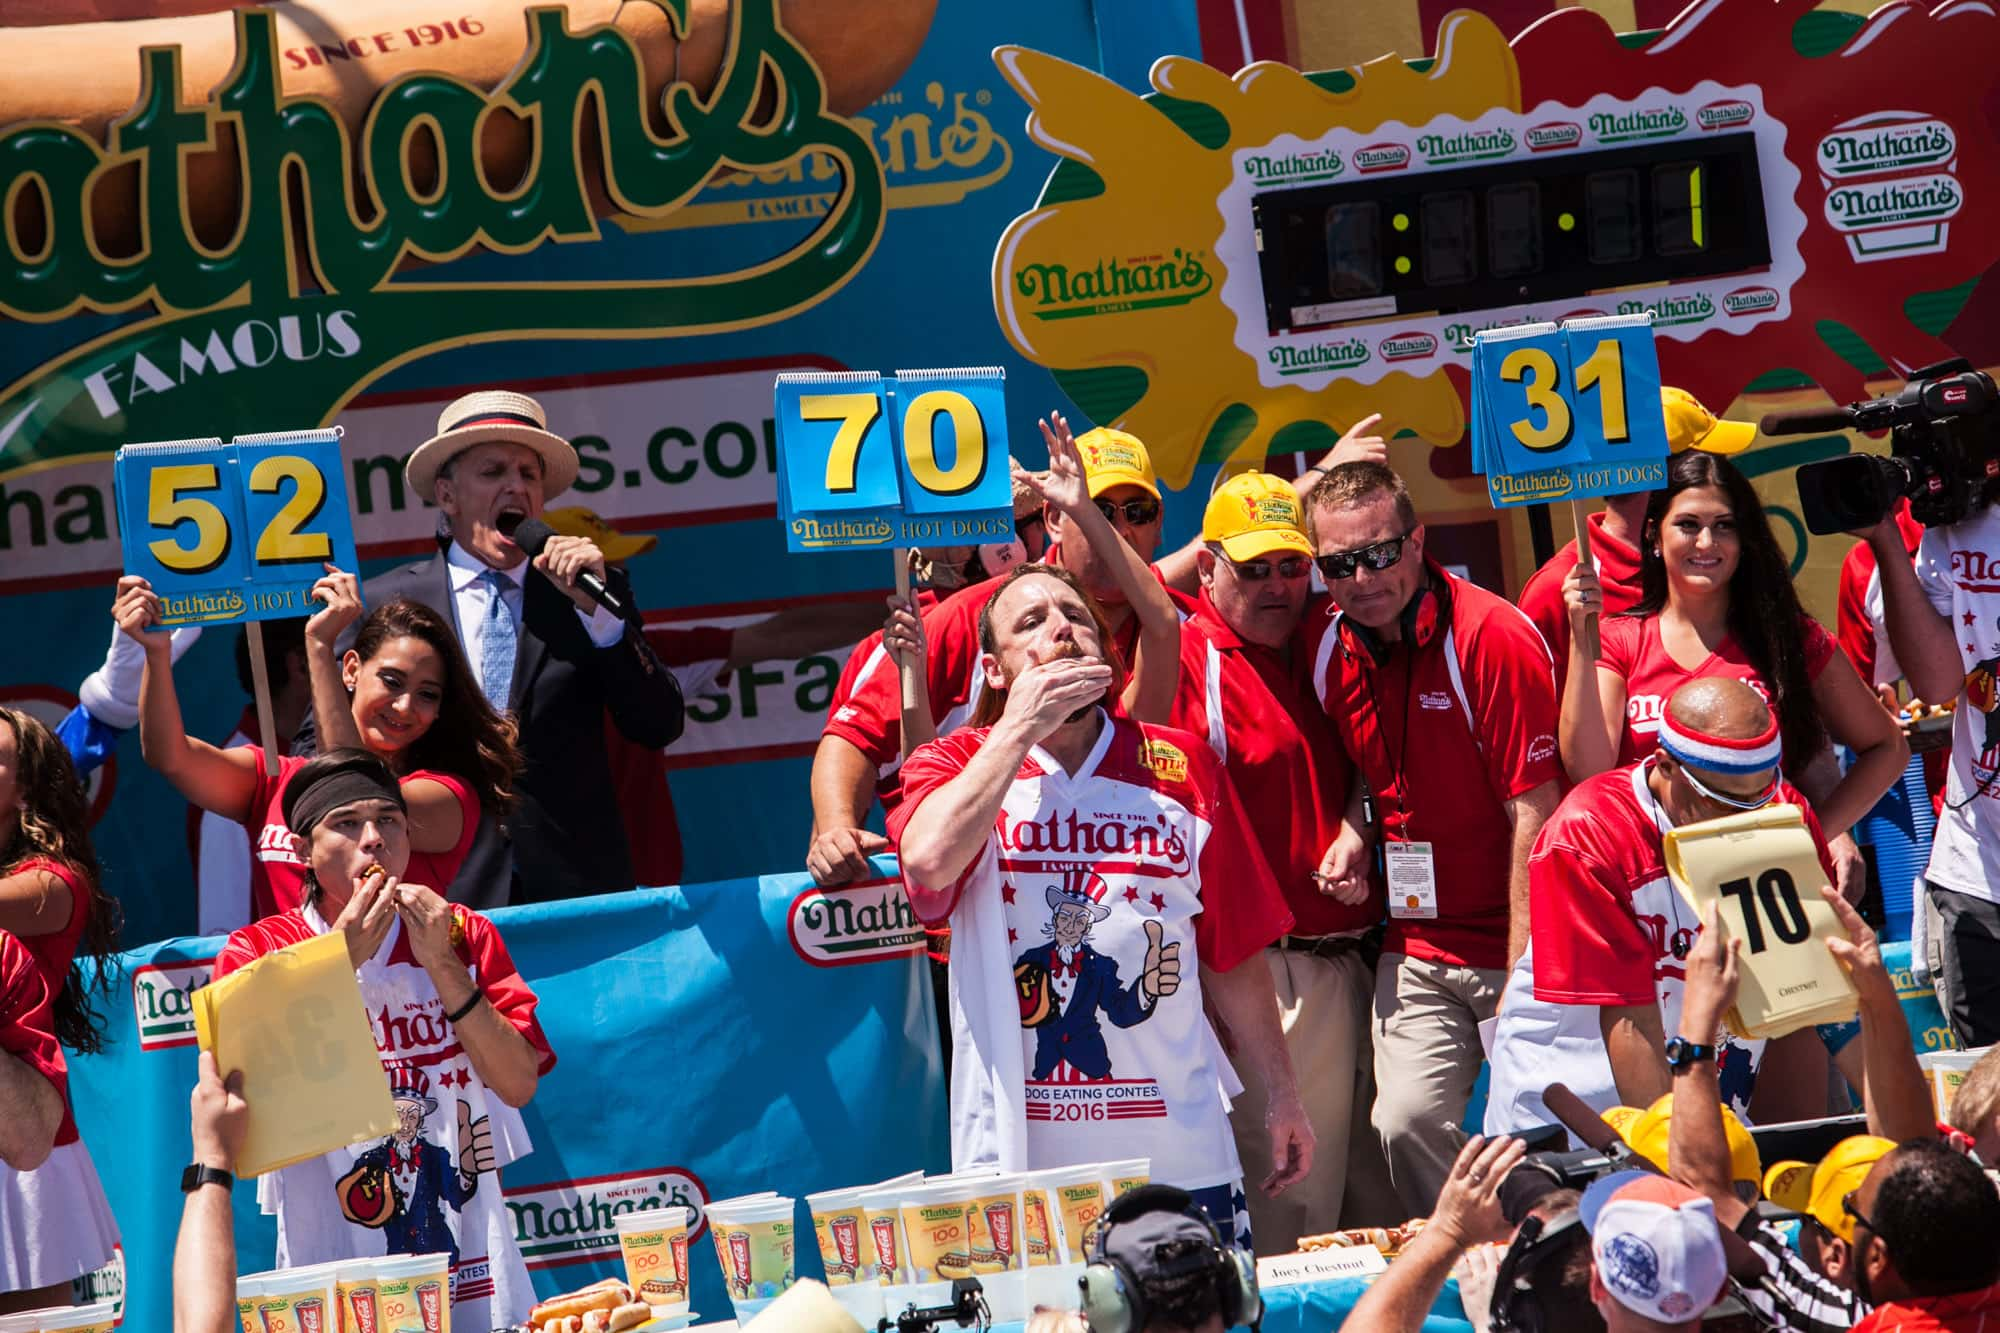 Joey Chestnut eats 70 hot dogs to win the 2016 Nathan's Famous July Fourth hot dog eating contest at Coney Island.